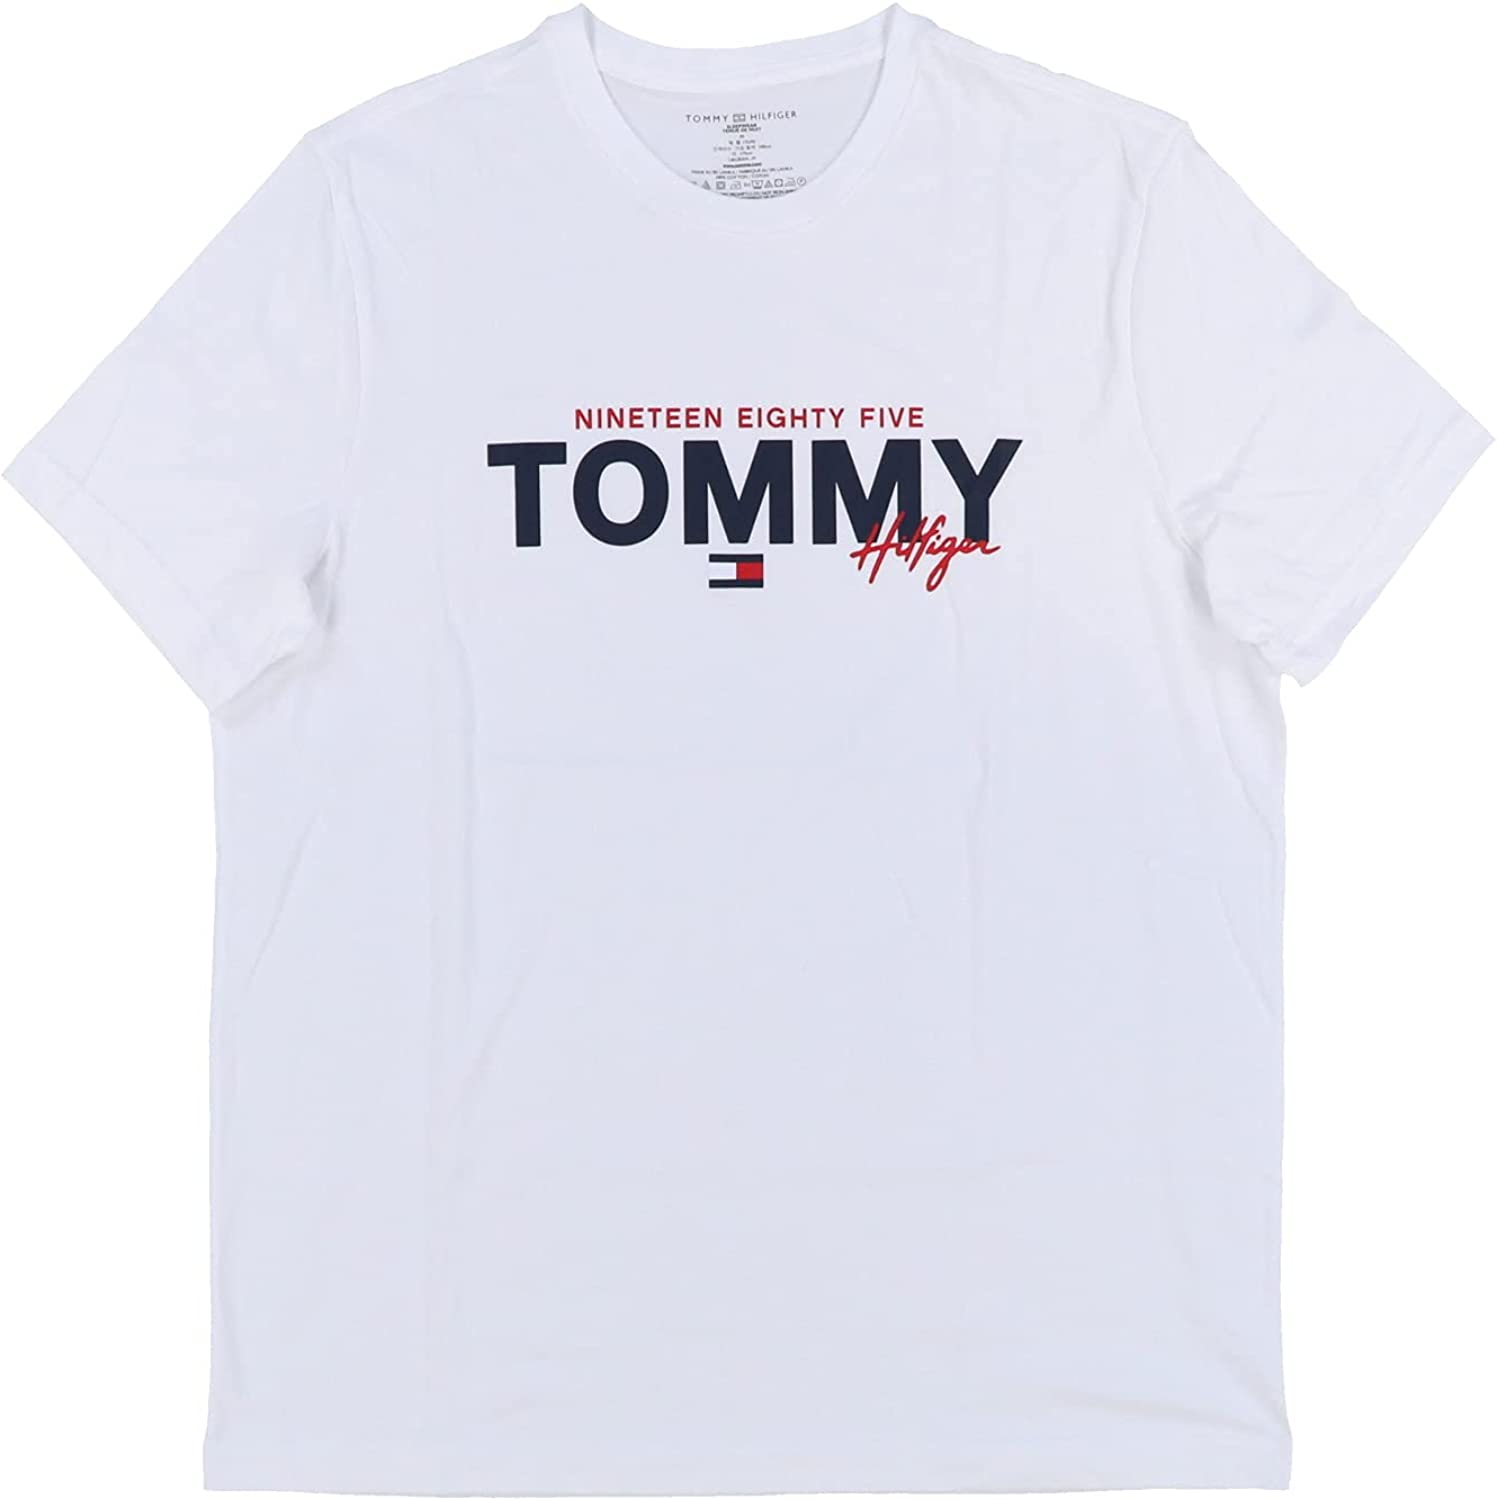 Tommy Hilfiger Mens Graphic Logo Bombing new work Shirt Sleep Opening large release sale